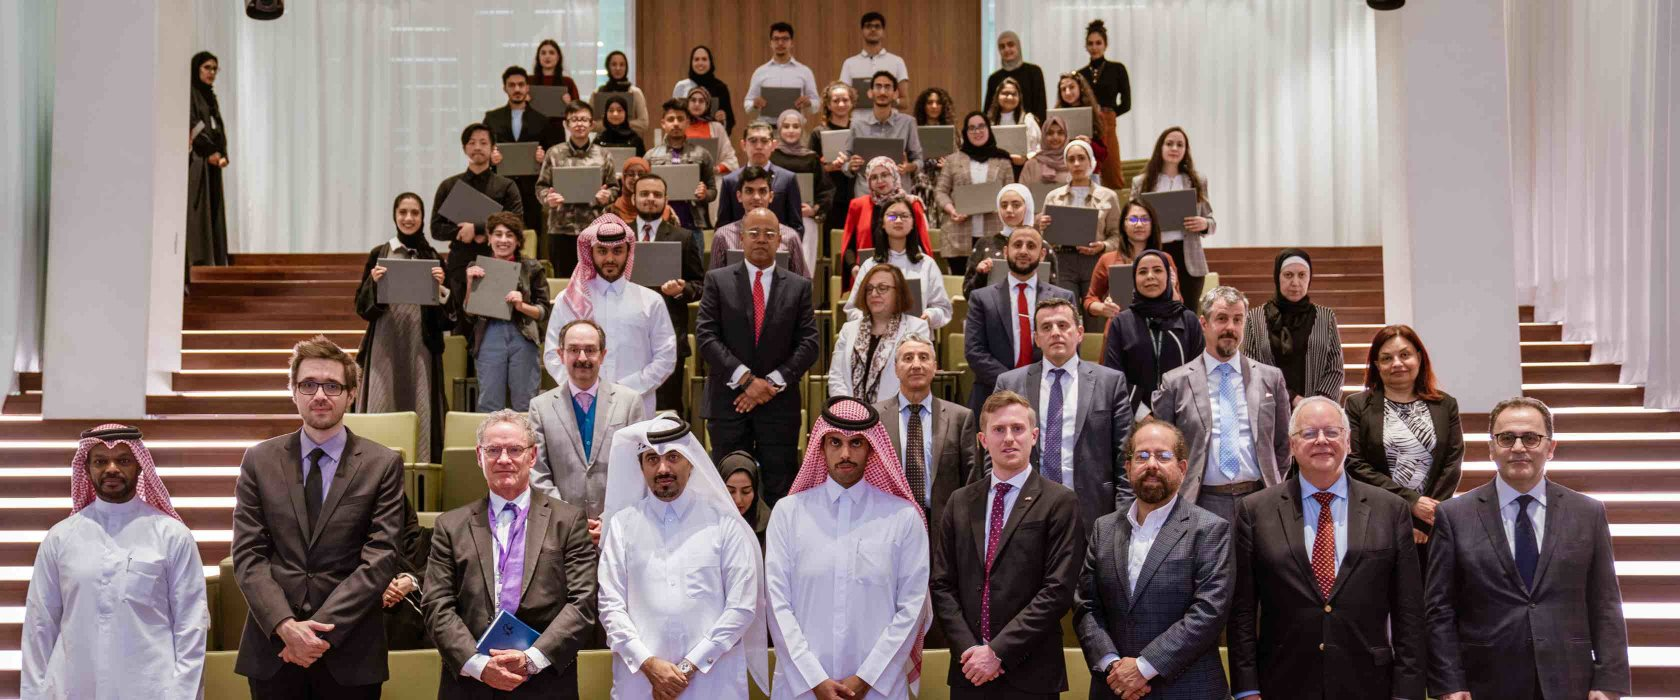 QF scholarships open up new horizons for students